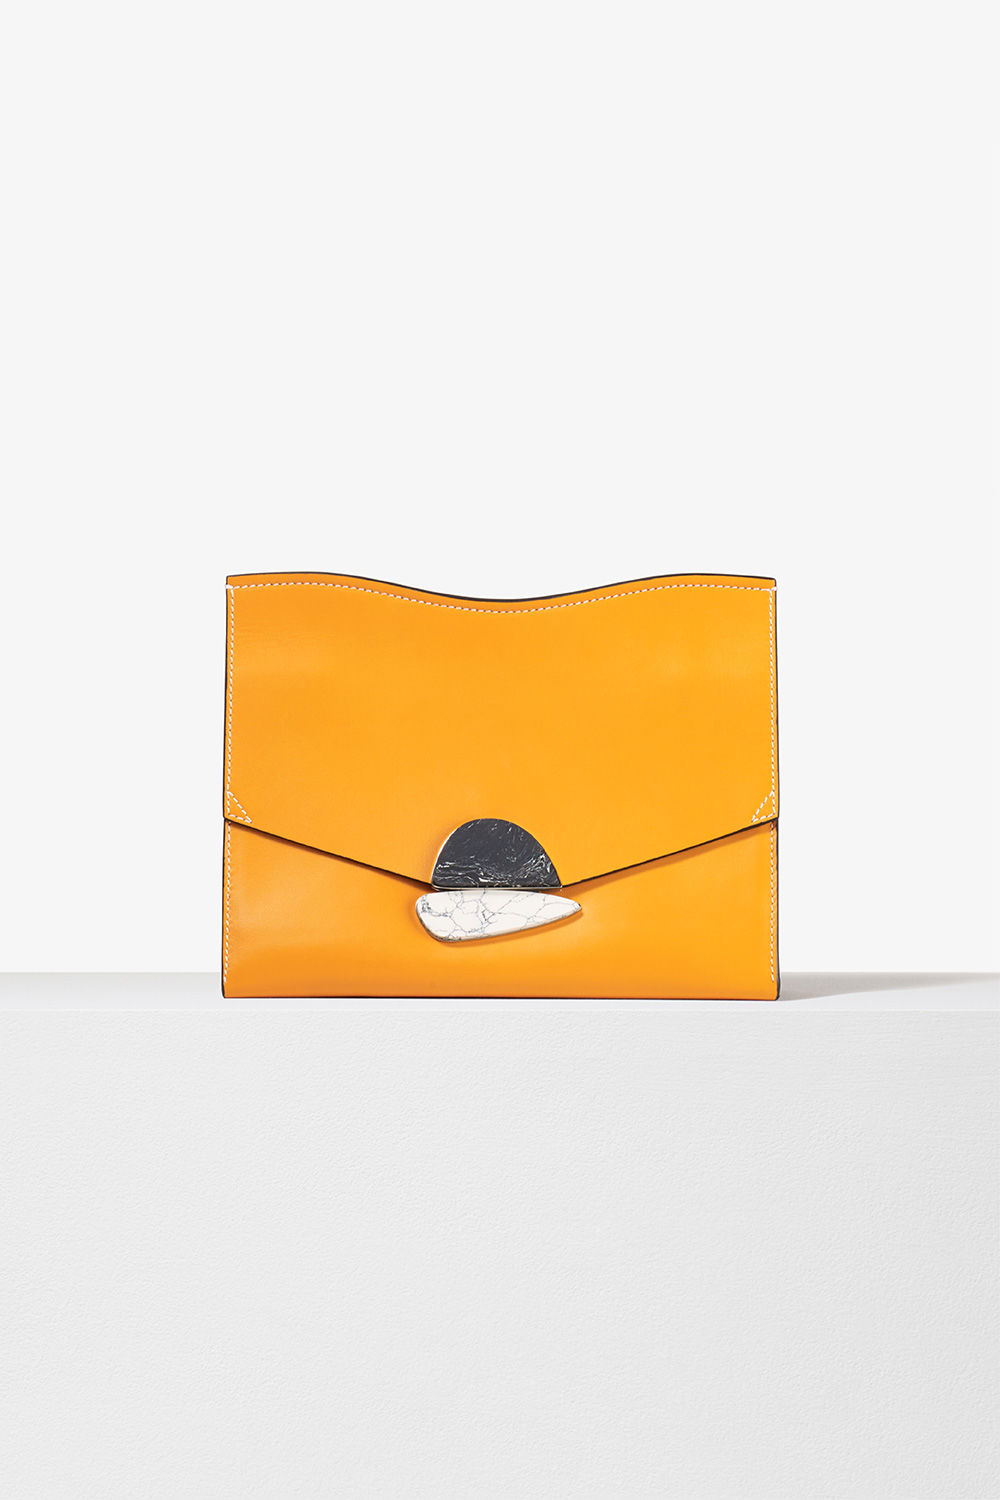 proenza schouler spring 2017 sunflower smooth leather medium curl clutch